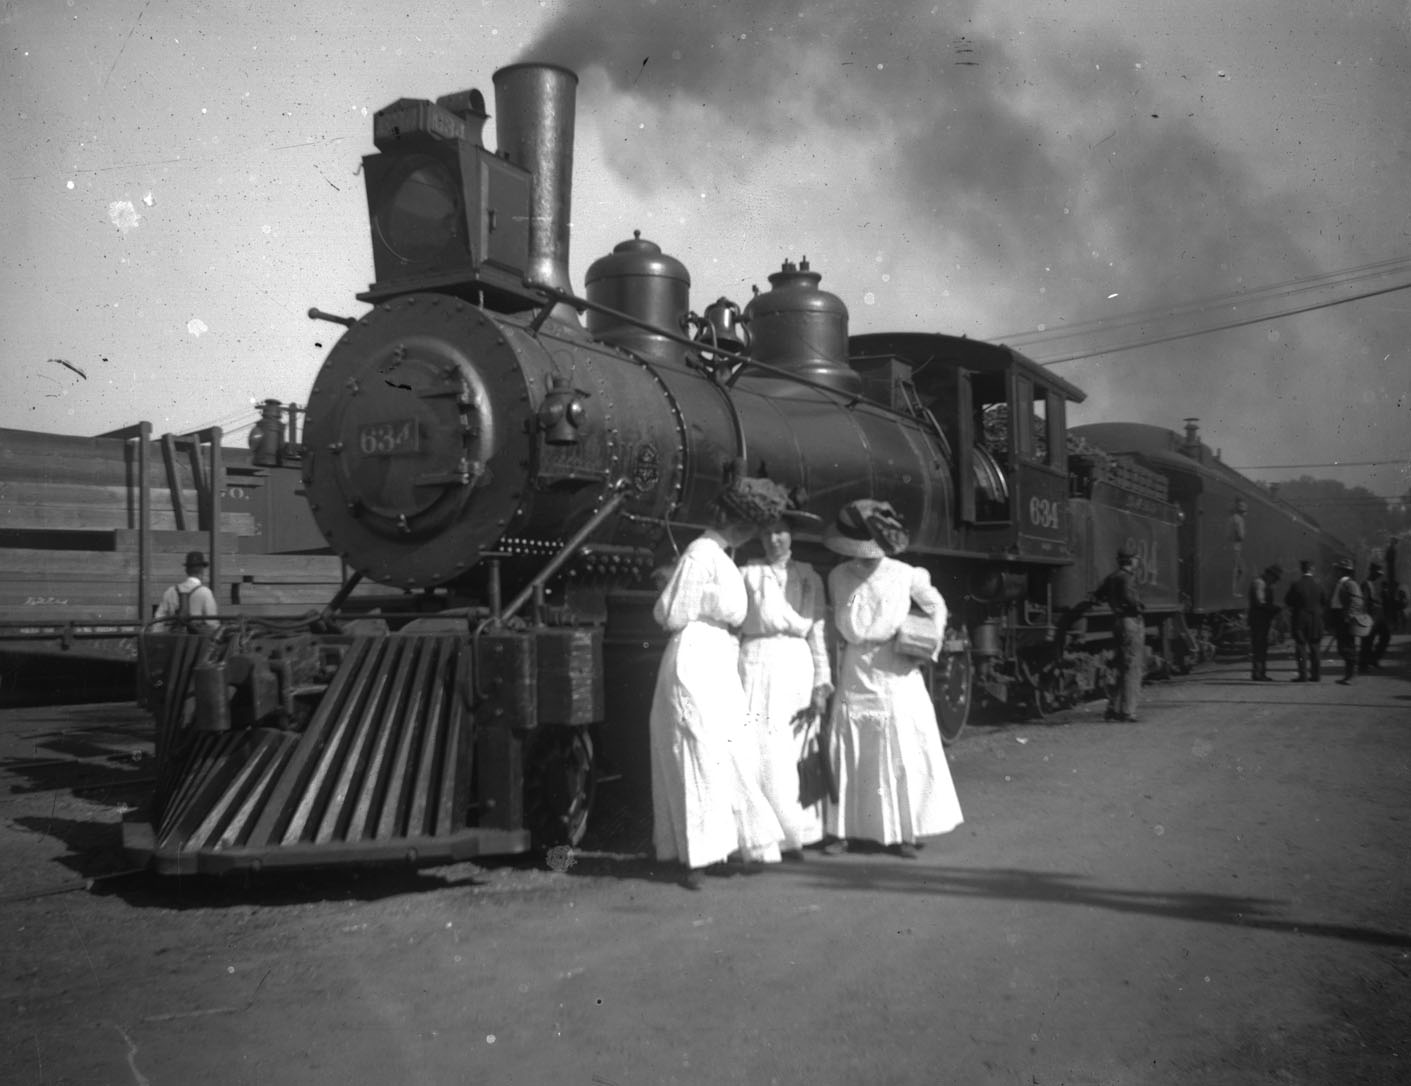 Three women in white dresses stand in front of a locomotive.